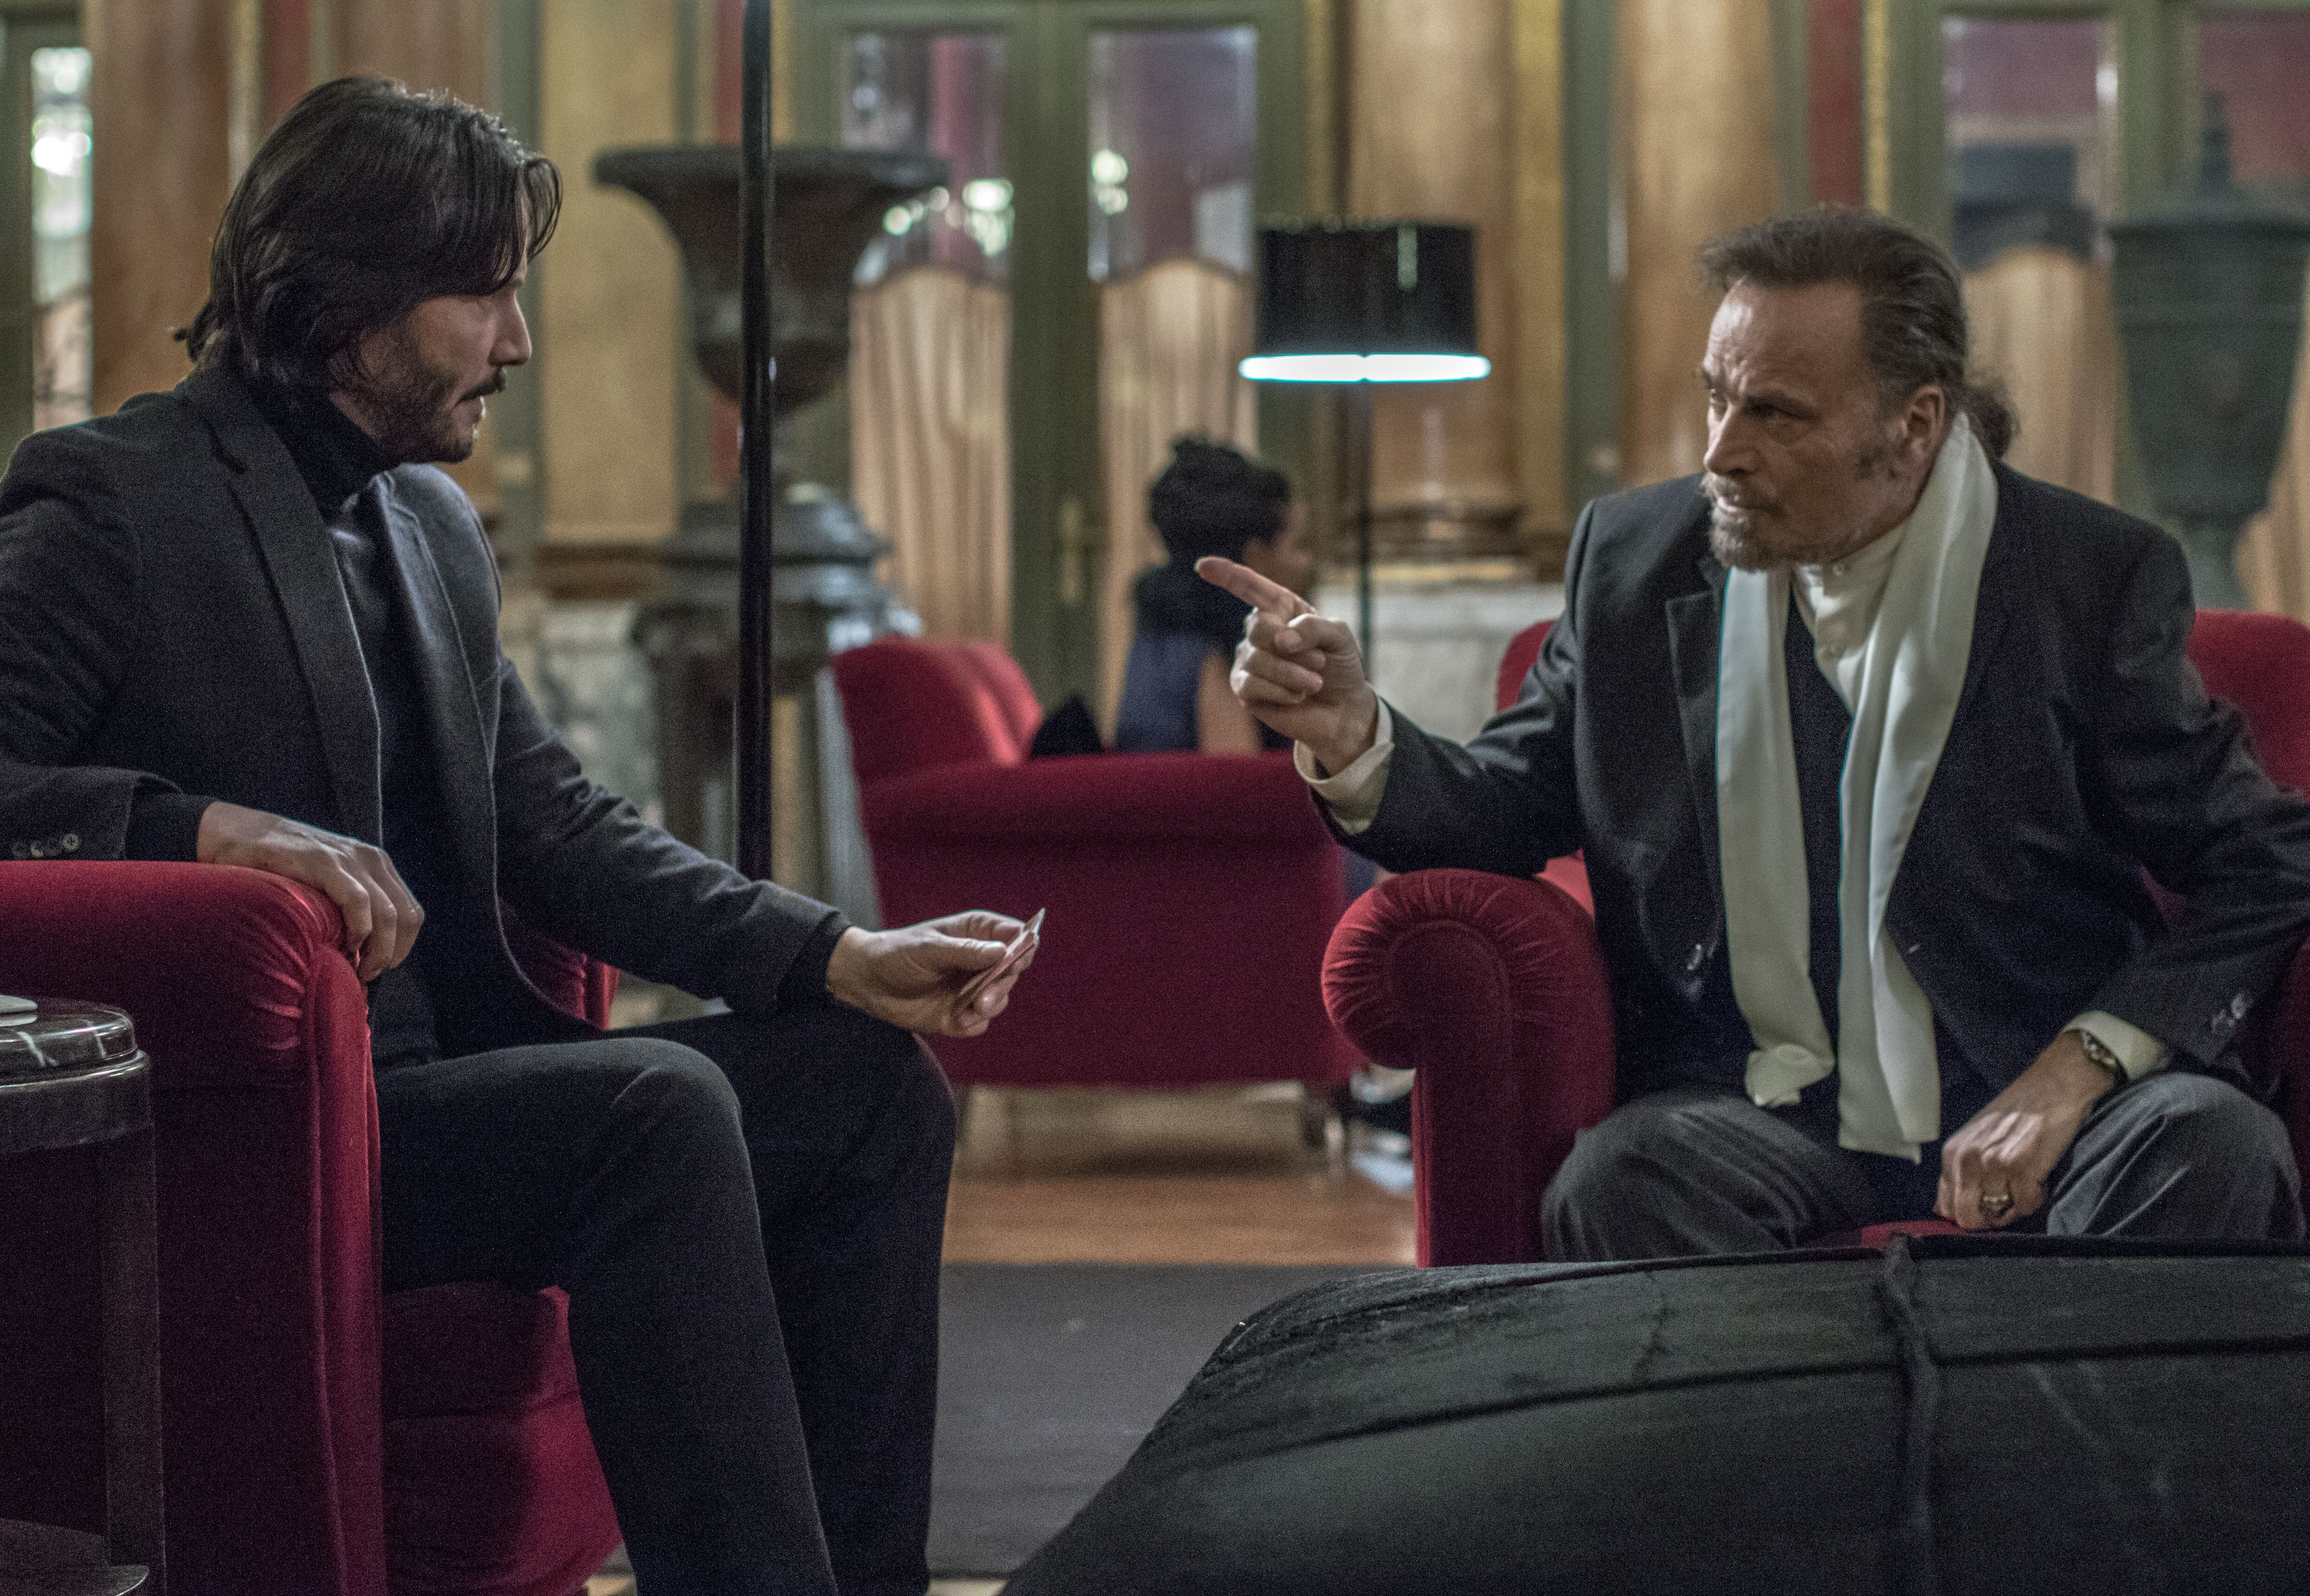 JOHN WICK 3: Script For Sequel In The Works